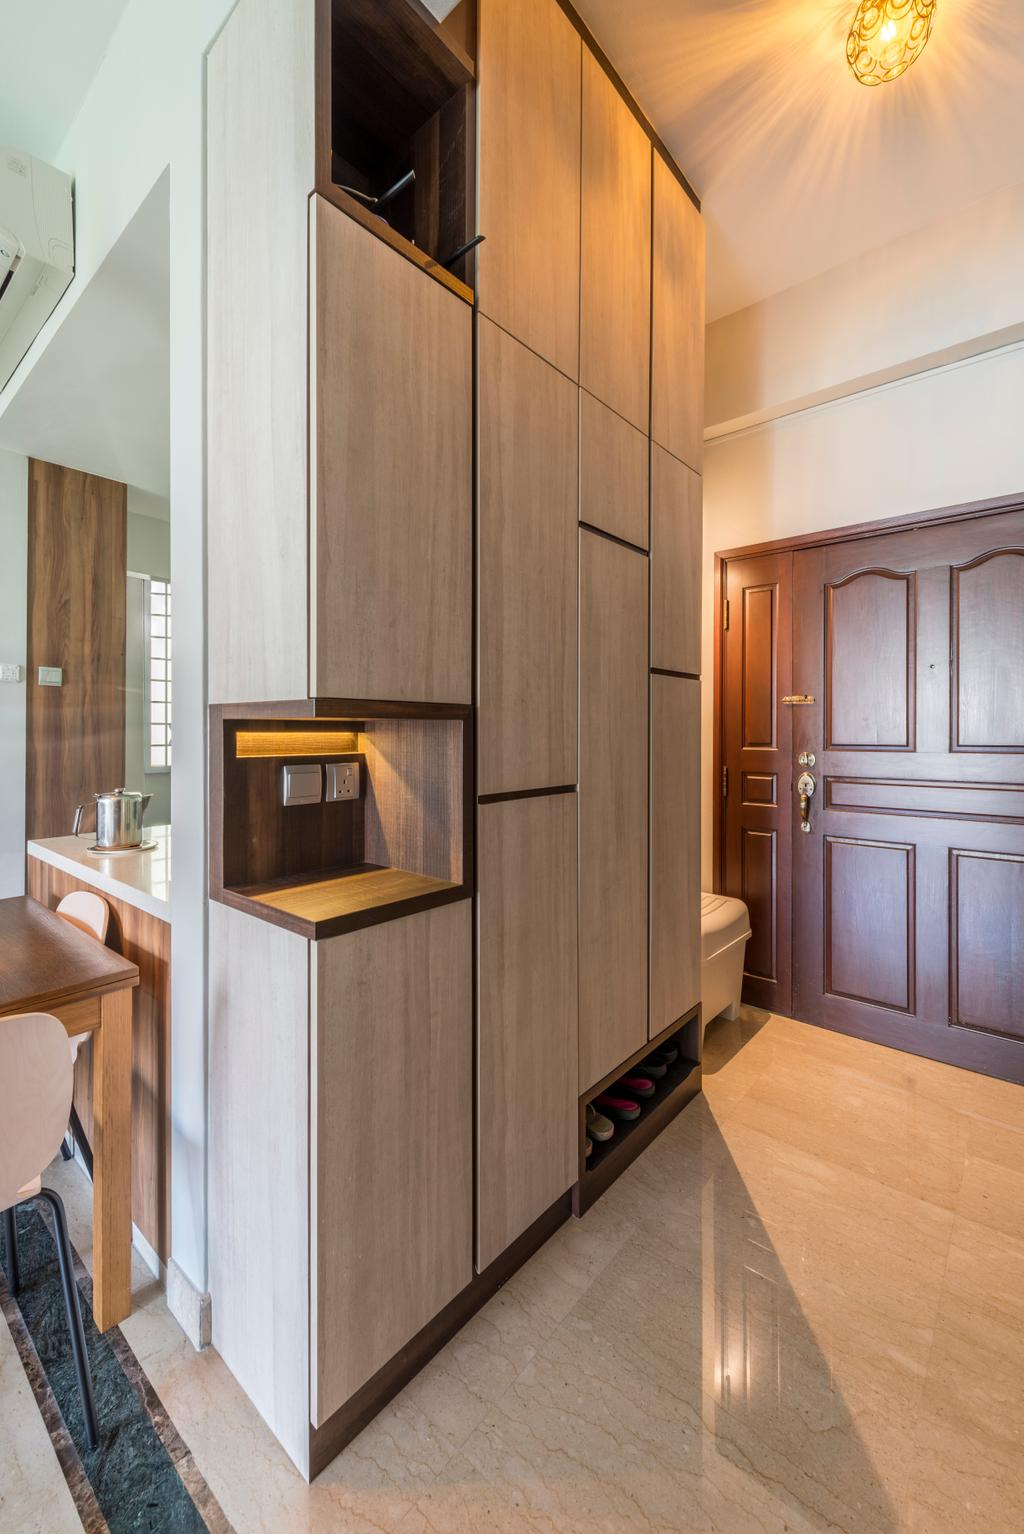 Condo, Hillview Green, Interior Designer, D Initial Concept, Sink, Appliance, Electrical Device, Oven, Indoors, Interior Design, Kitchen, Room, Furniture, Sideboard